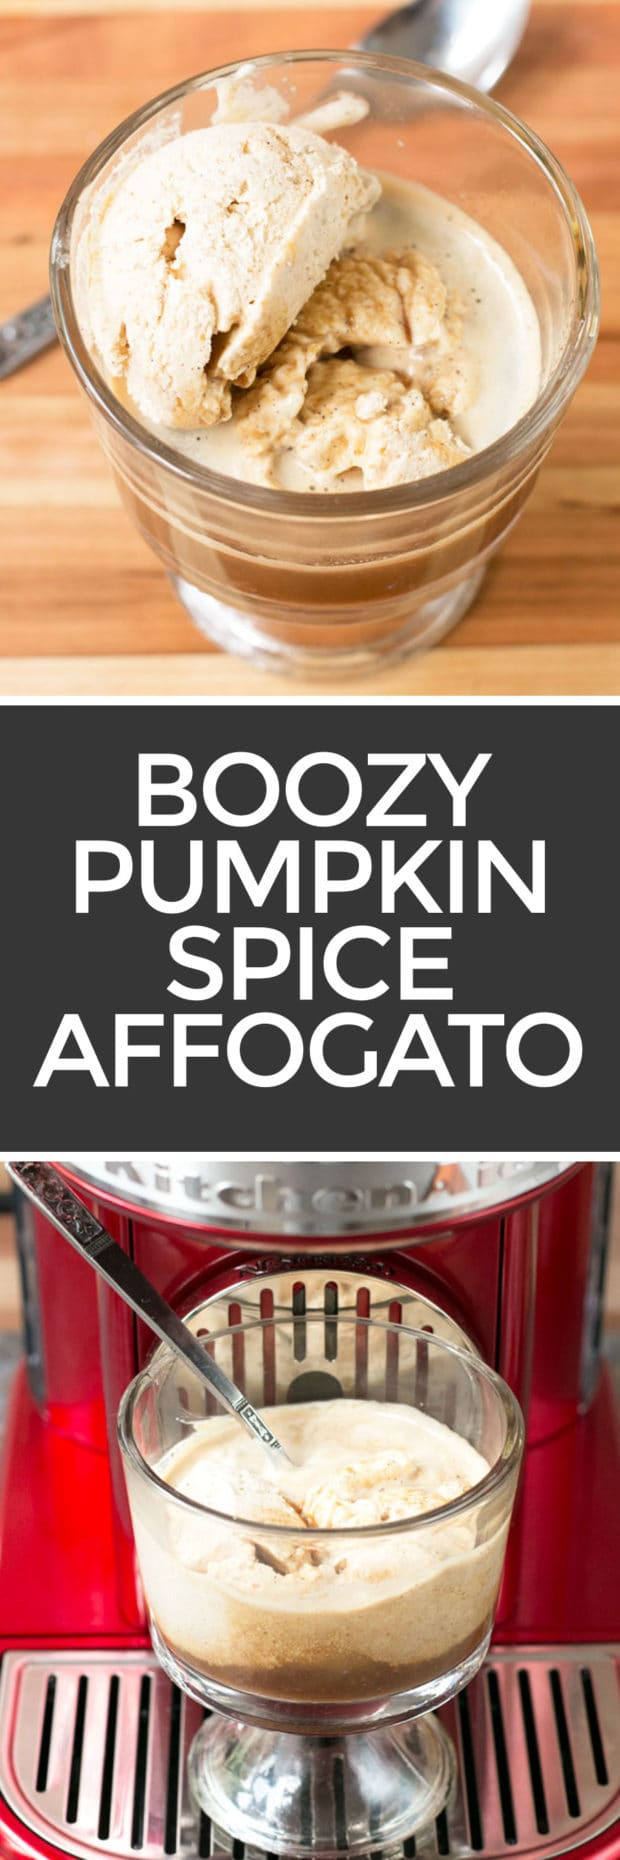 Boozy Pumpkin Spice Affogato + a KitchenAid® giveaway! | cakenknife.com